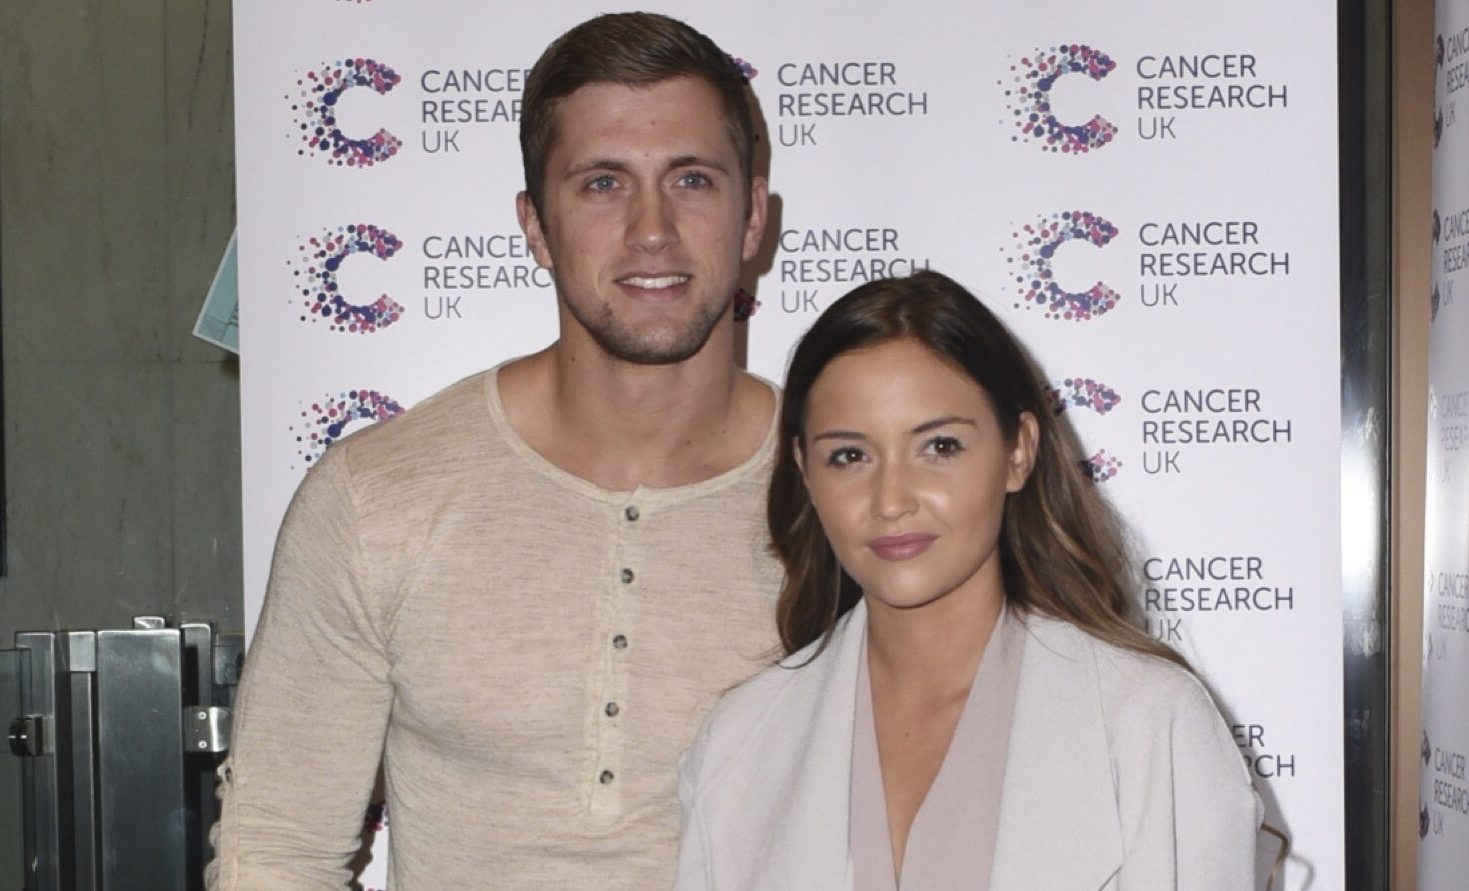 Dan Osborne and Jacqueline Jossa hint they are on good terms with sweet post